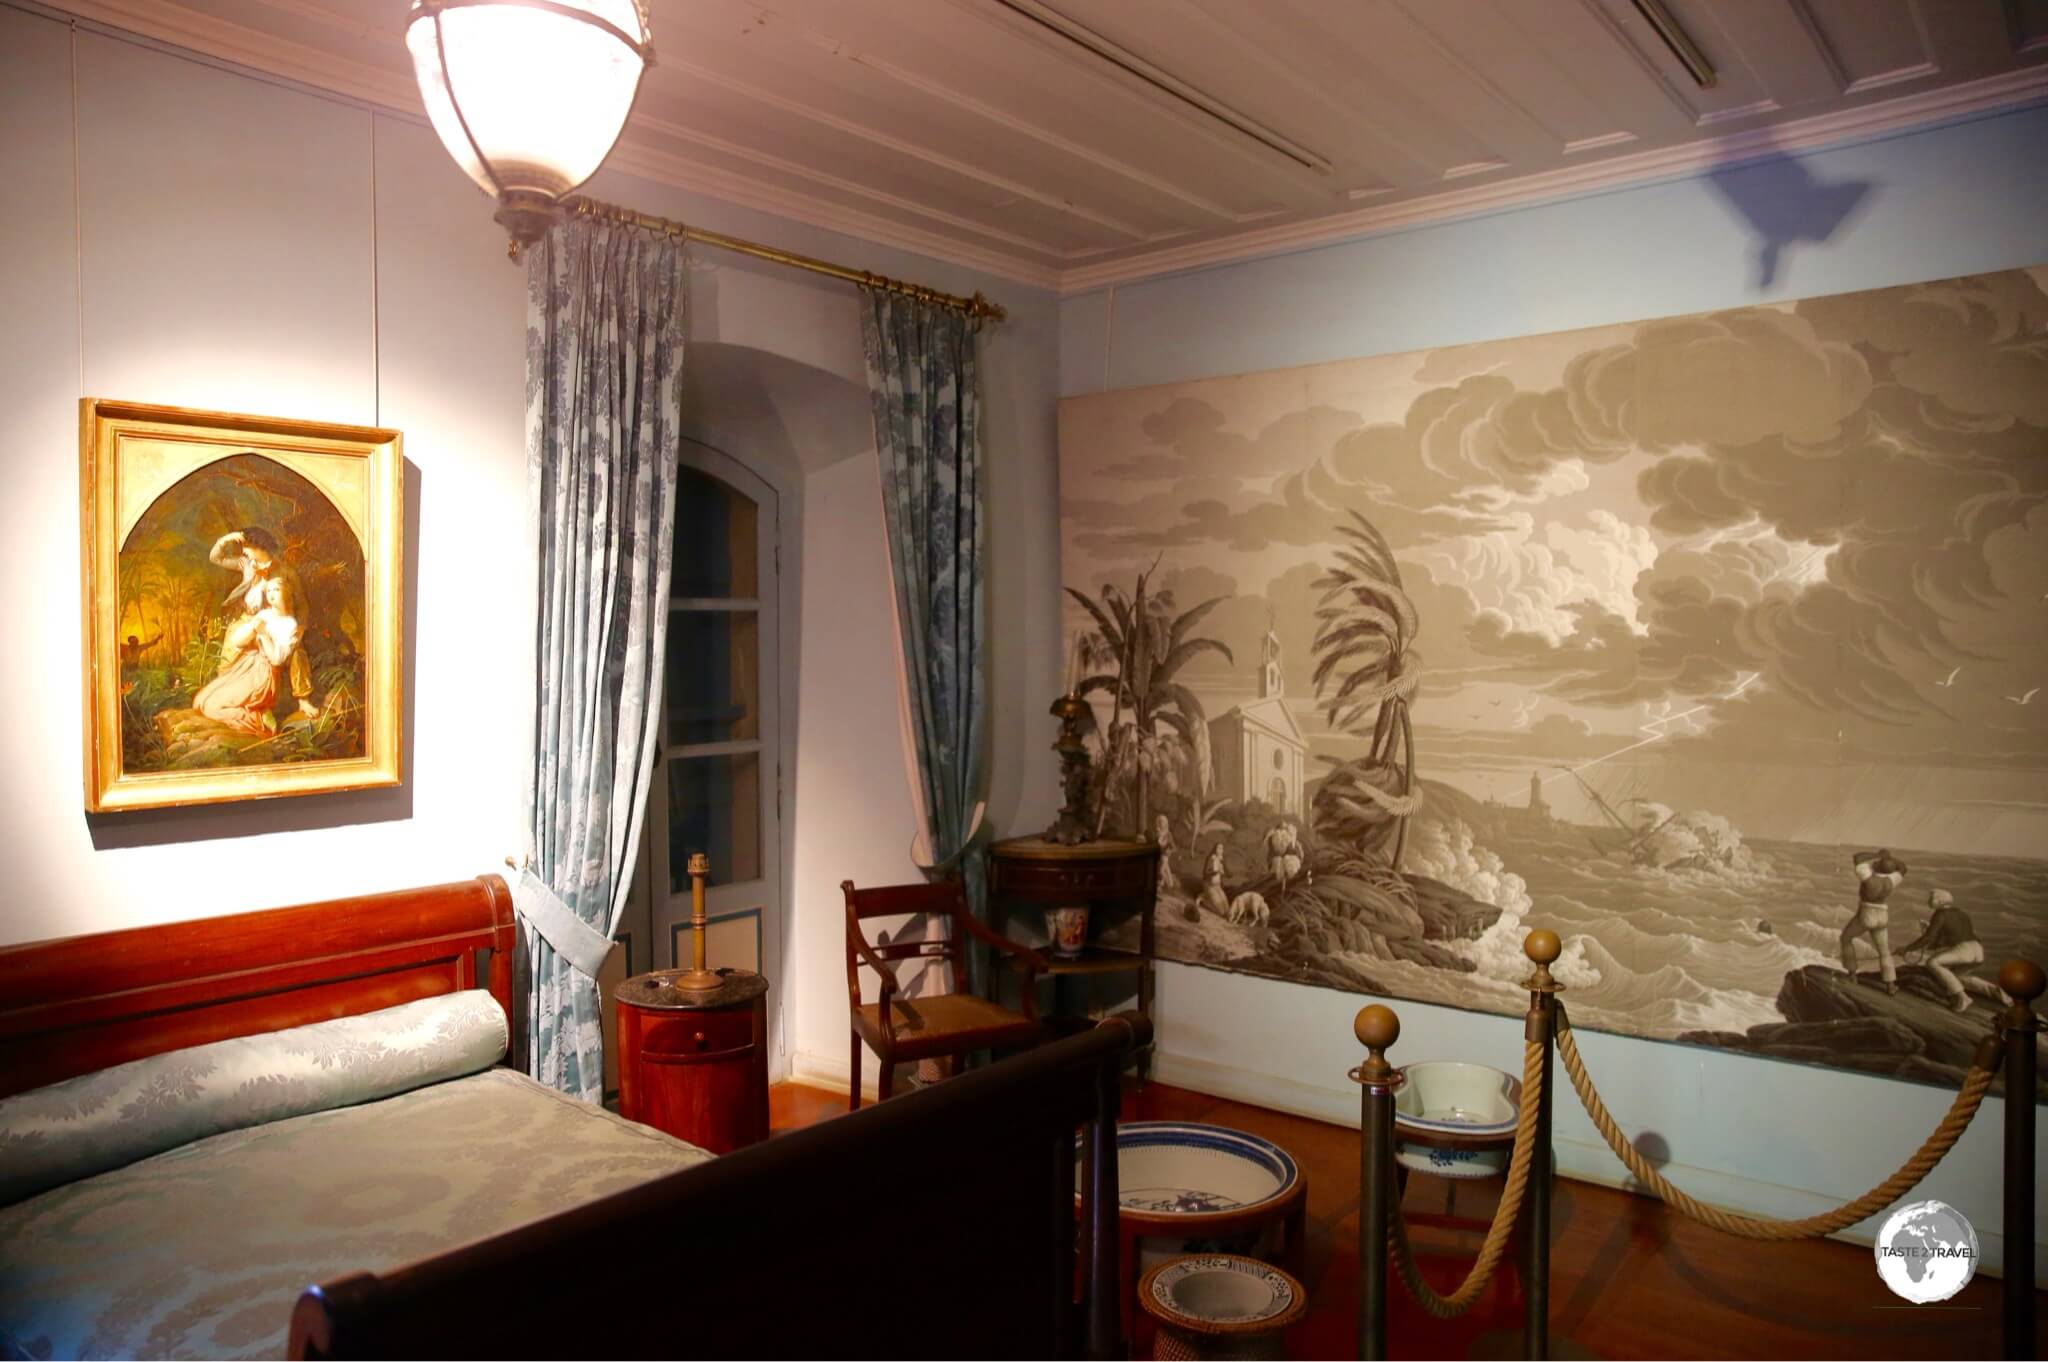 The sumptuous interiors of the mansion provide visitors with an insight into life on the island during the colonial era.